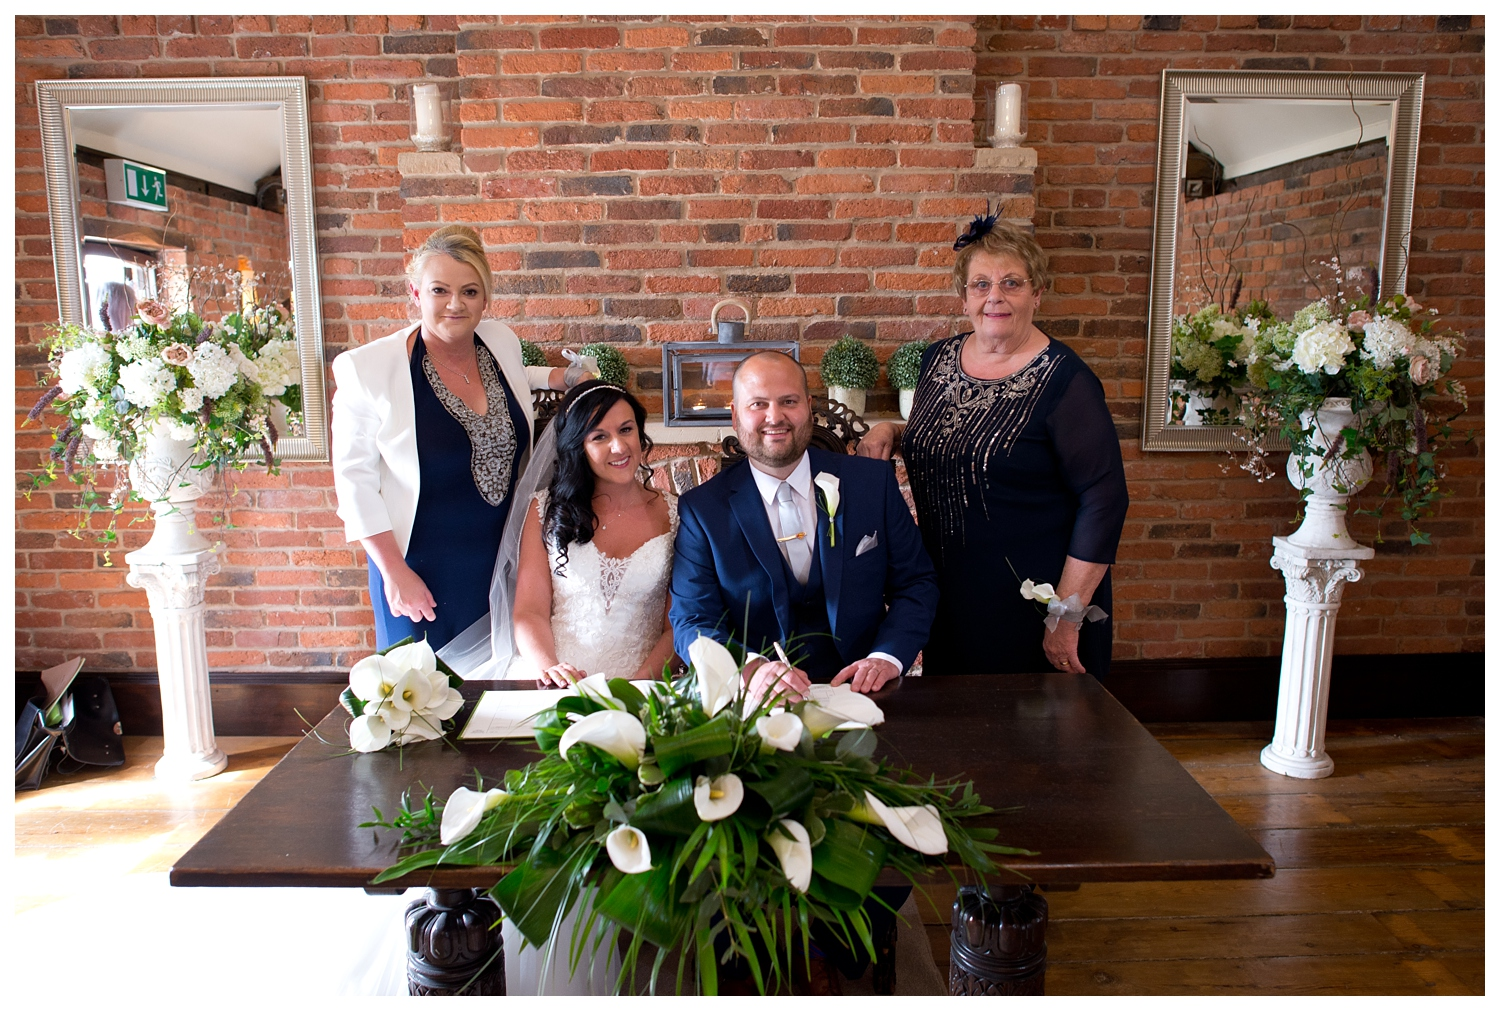 Swancar-Farm-Wedding-Photography_0041